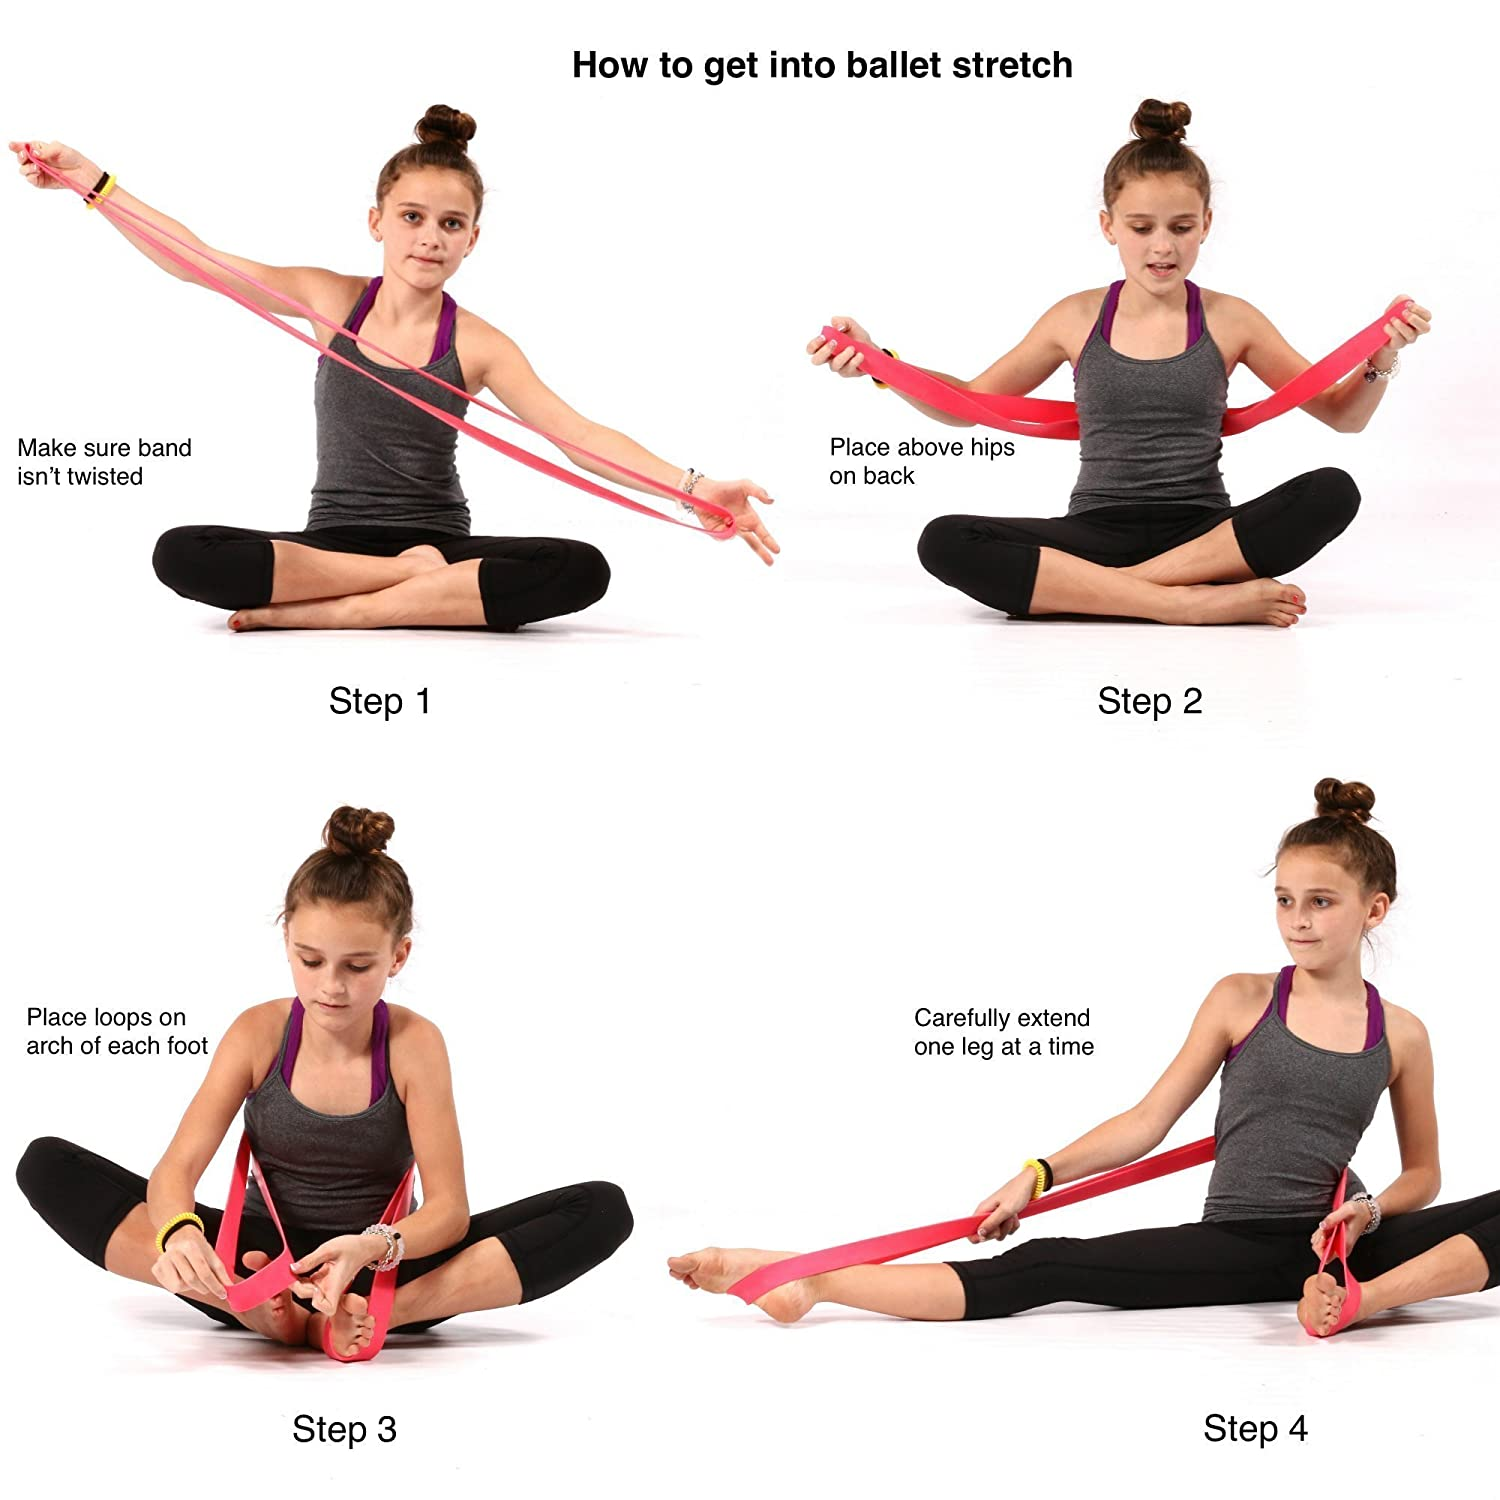 Q: I have heard you should stretch before your exercises, but I have also heard it is better to stretch after your exercises. Which is correct and what are some good stretches for walkers Q: I have heard you should stretch before your exercises, but I have also heard it is better to stretch after your exercises. Which is correct and what are some good stretches for walkers new photo